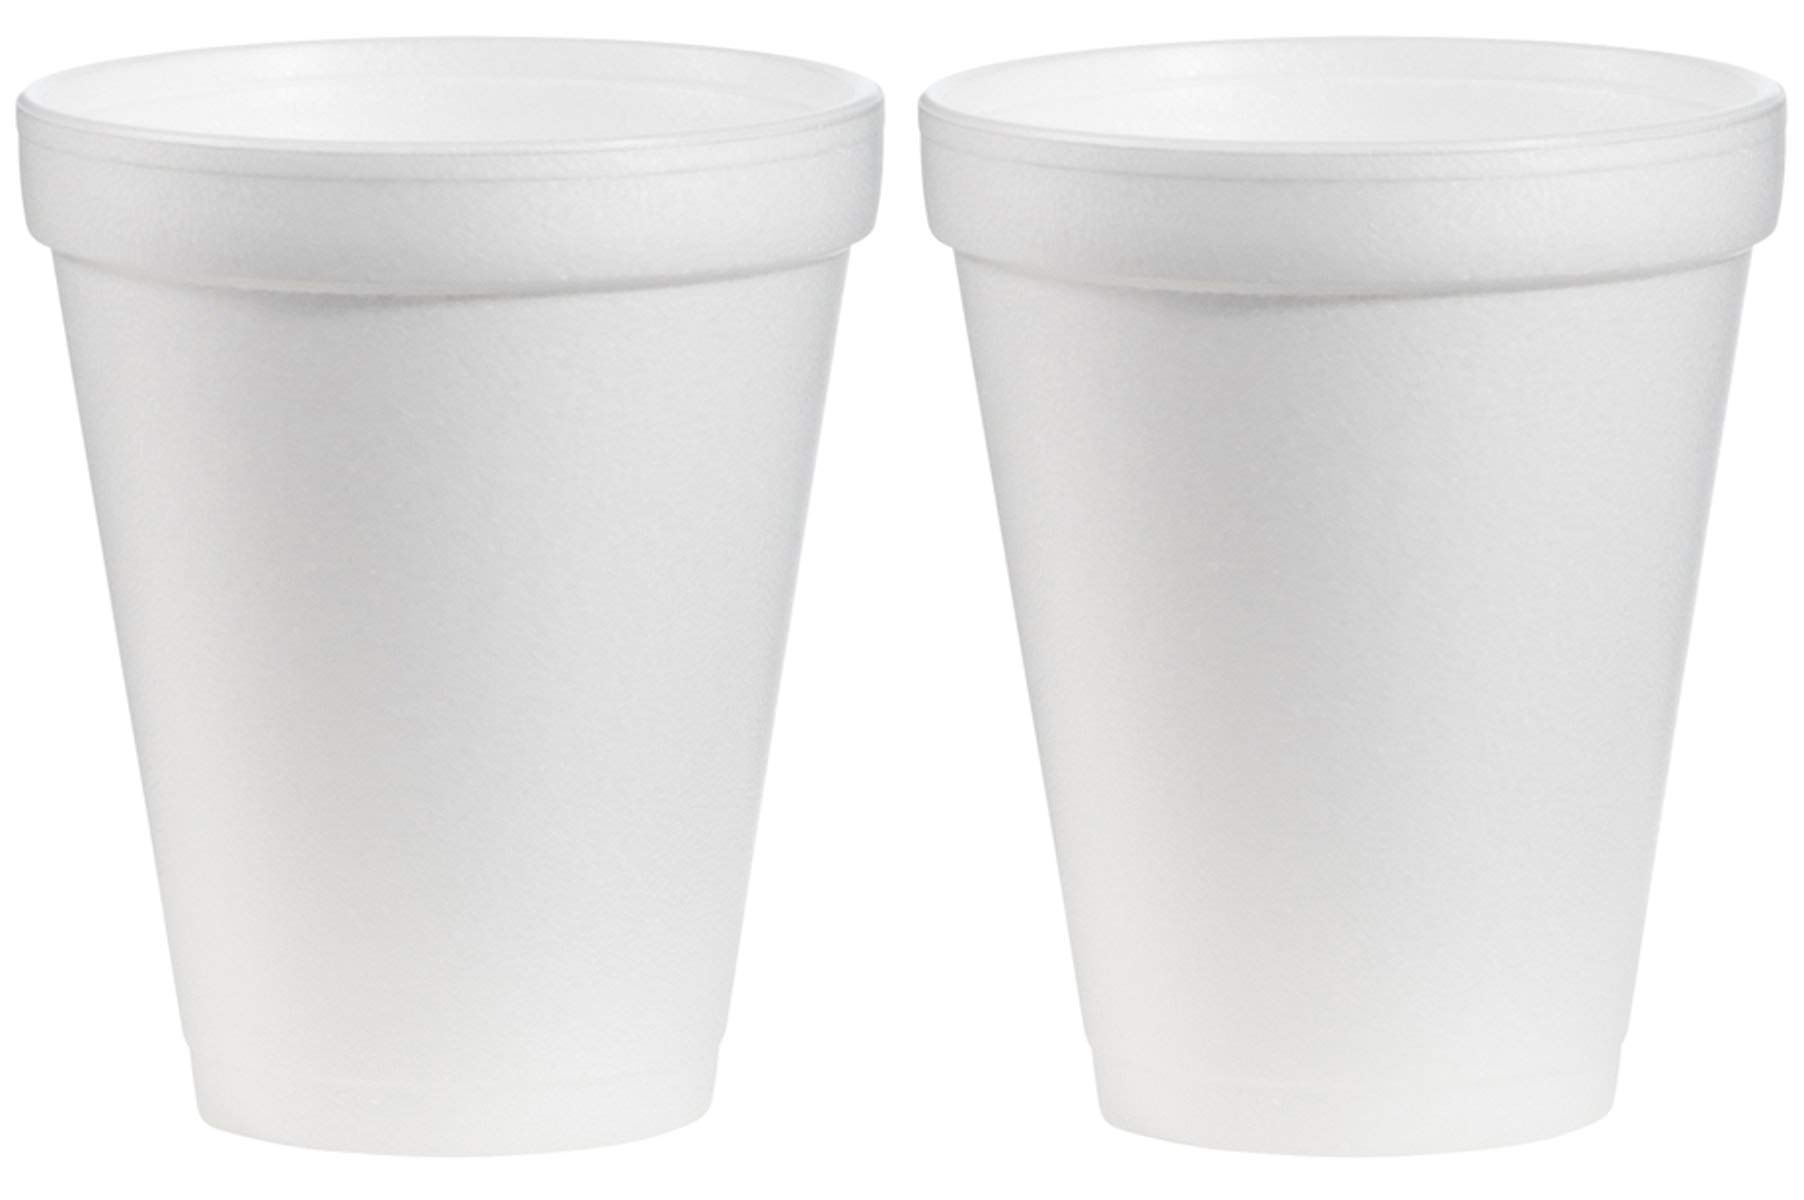 FBFAKQDD Foam Drink Cups, 12oz, White, 2 Cases of 1000 Cups